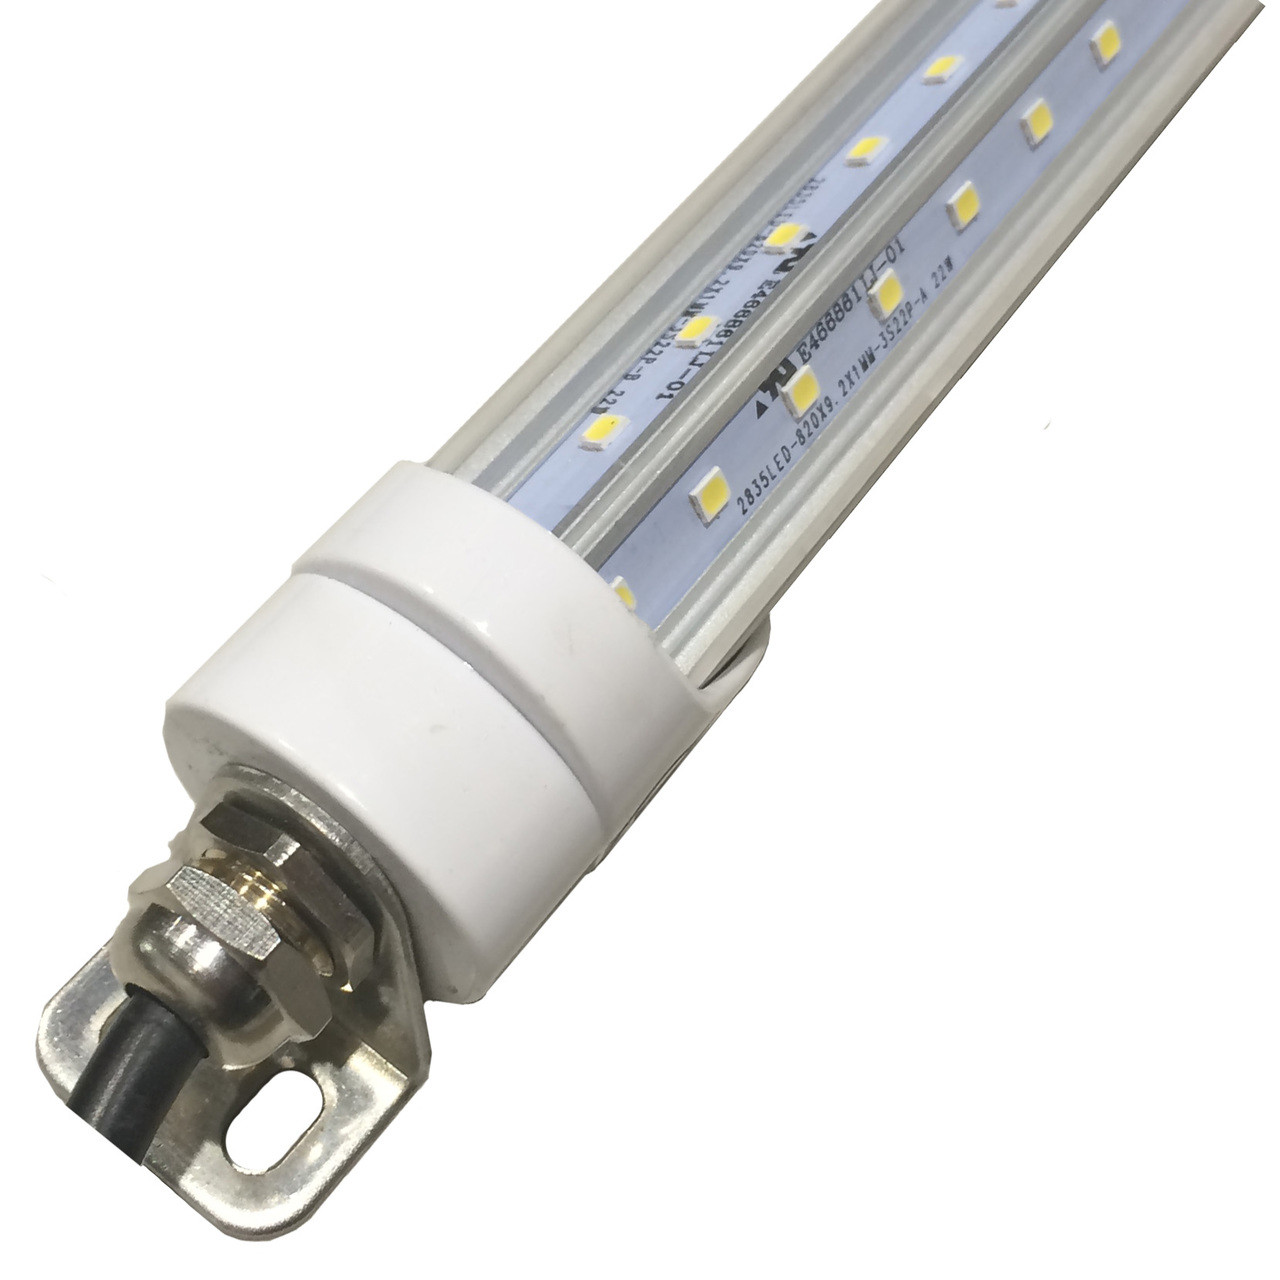 hight resolution of t8 led freezer cooler six foot tube to replace florescent s led wiring diagram for t8 6 bulb led light